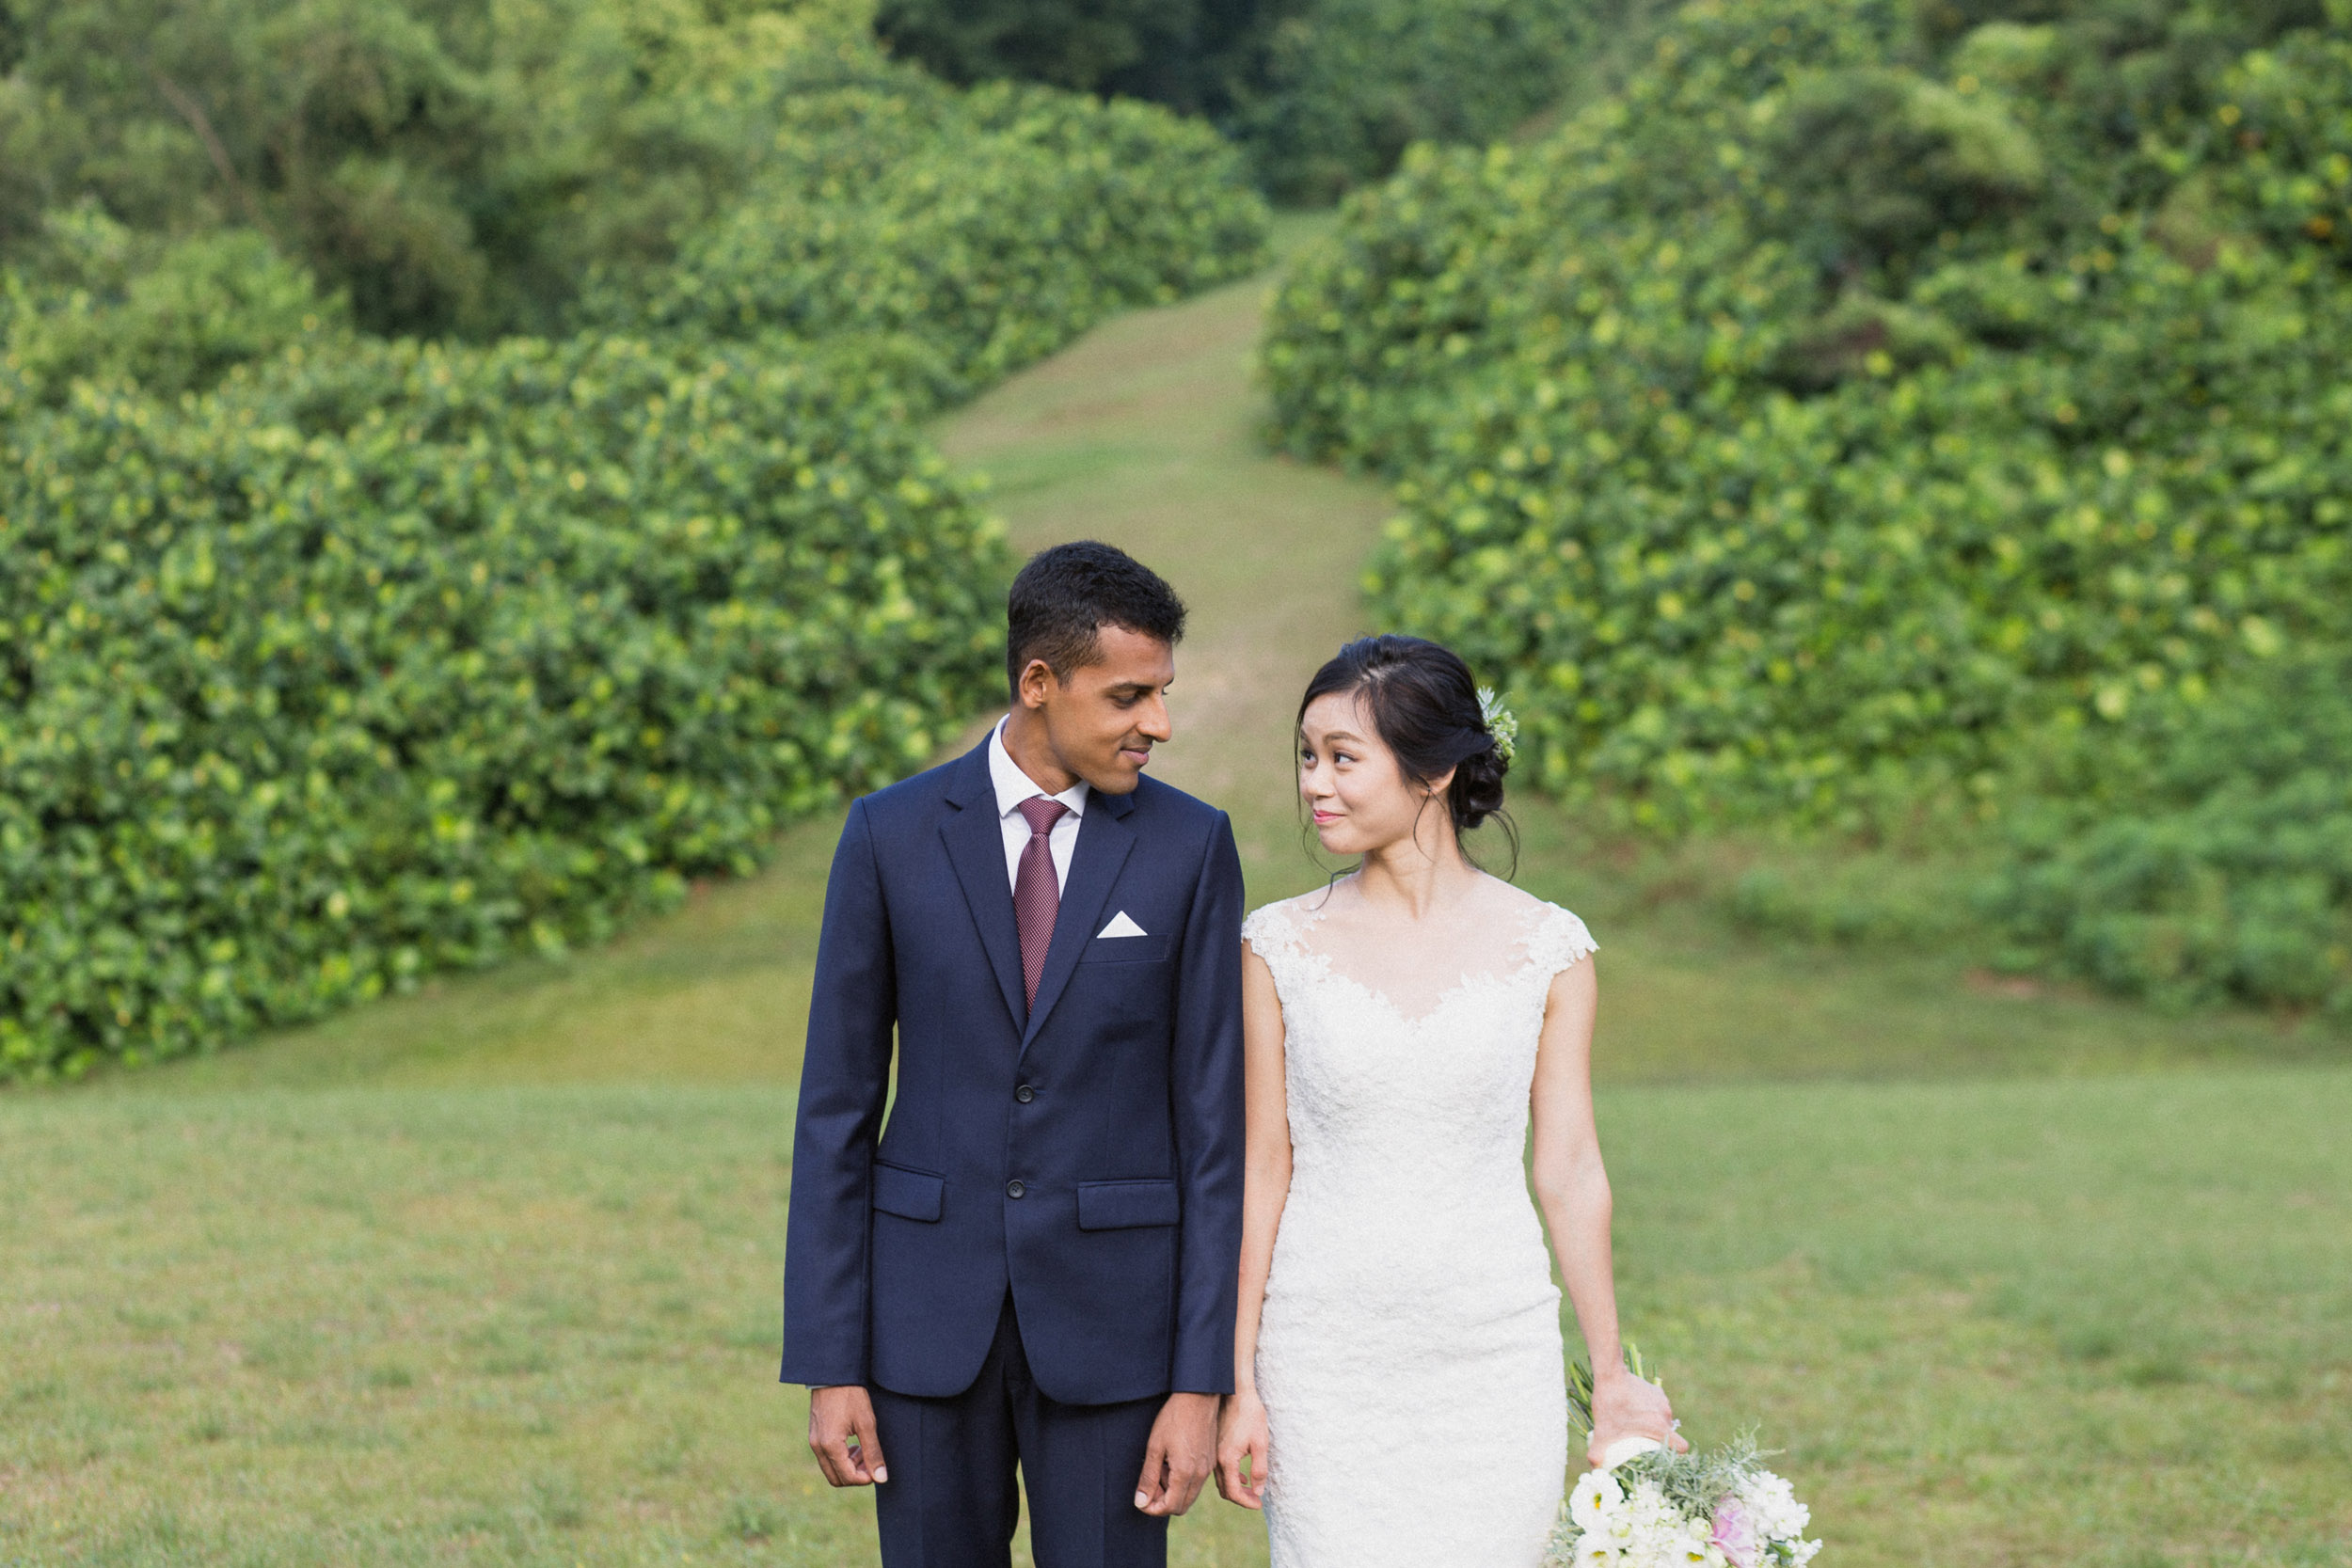 singapore-wedding-photographer-wemadethese-suriya-xinqi-16.jpg